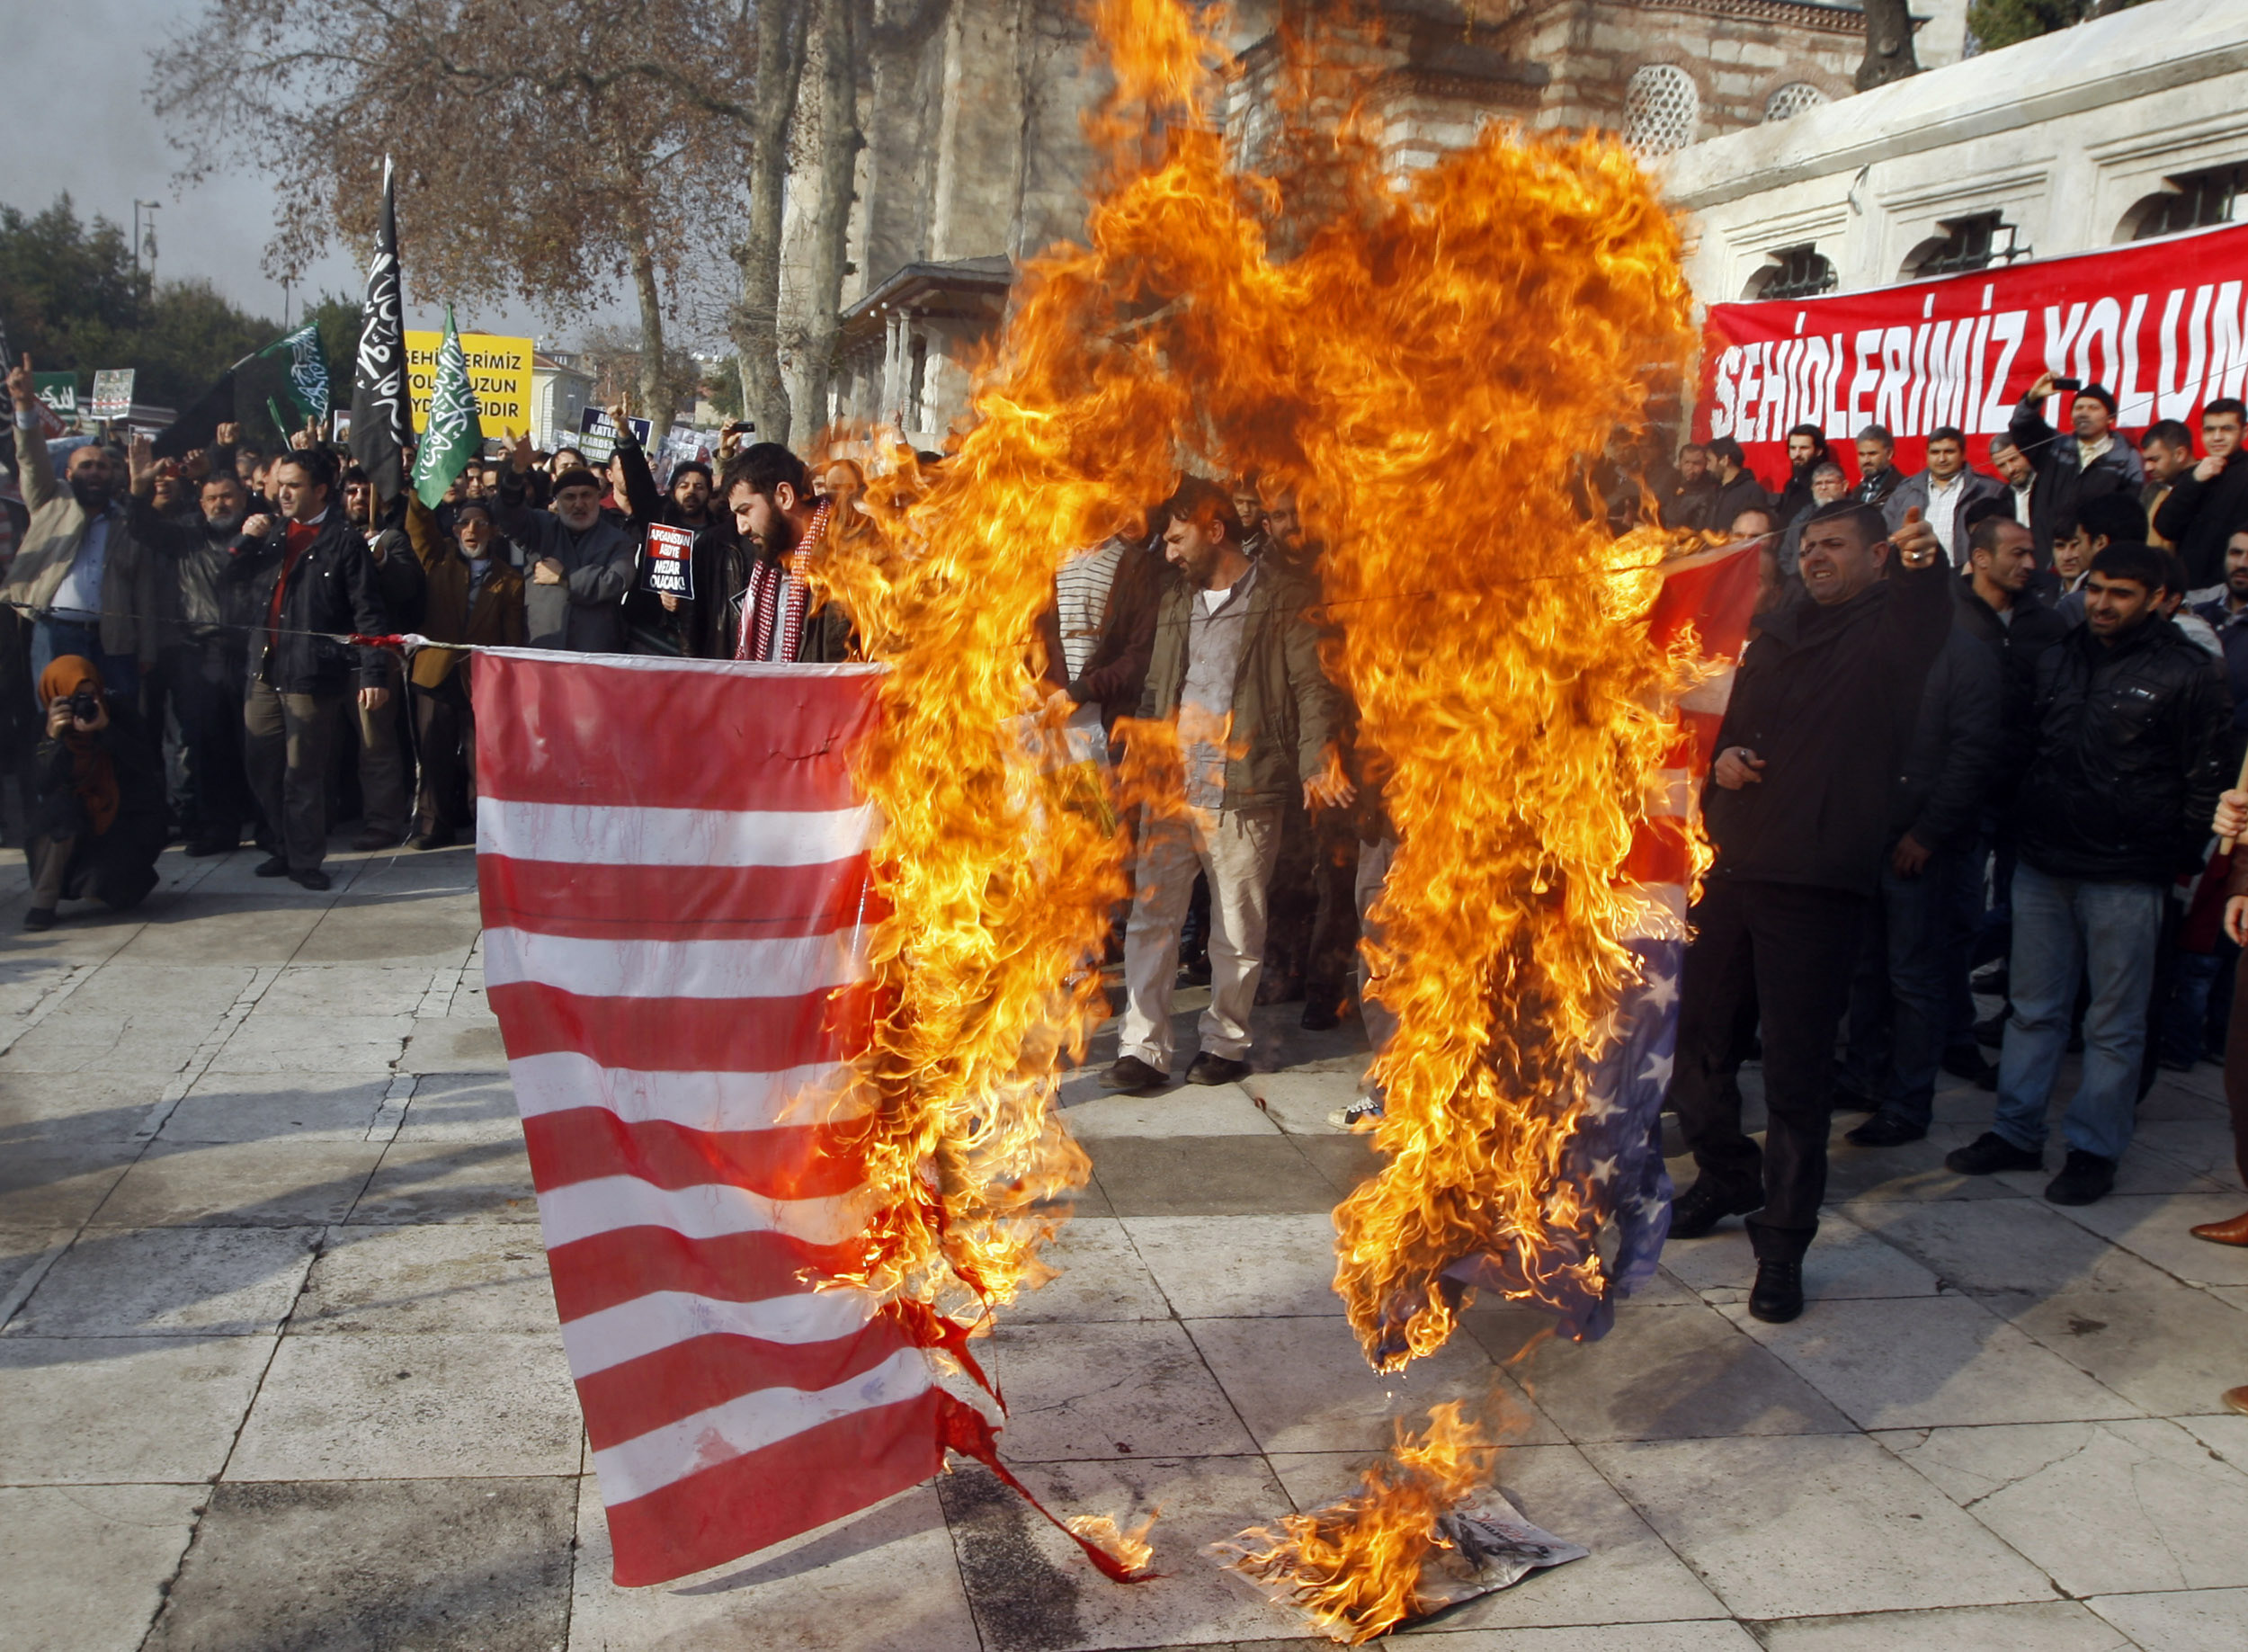 Protesters shout slogans as they burn a U.S. flag during an anti-America protest after Friday prayers in Istanbul December 2, 2011. REUTERS/Osman Orsal (TURKEY - Tags: POLITICS CIVIL UNREST)